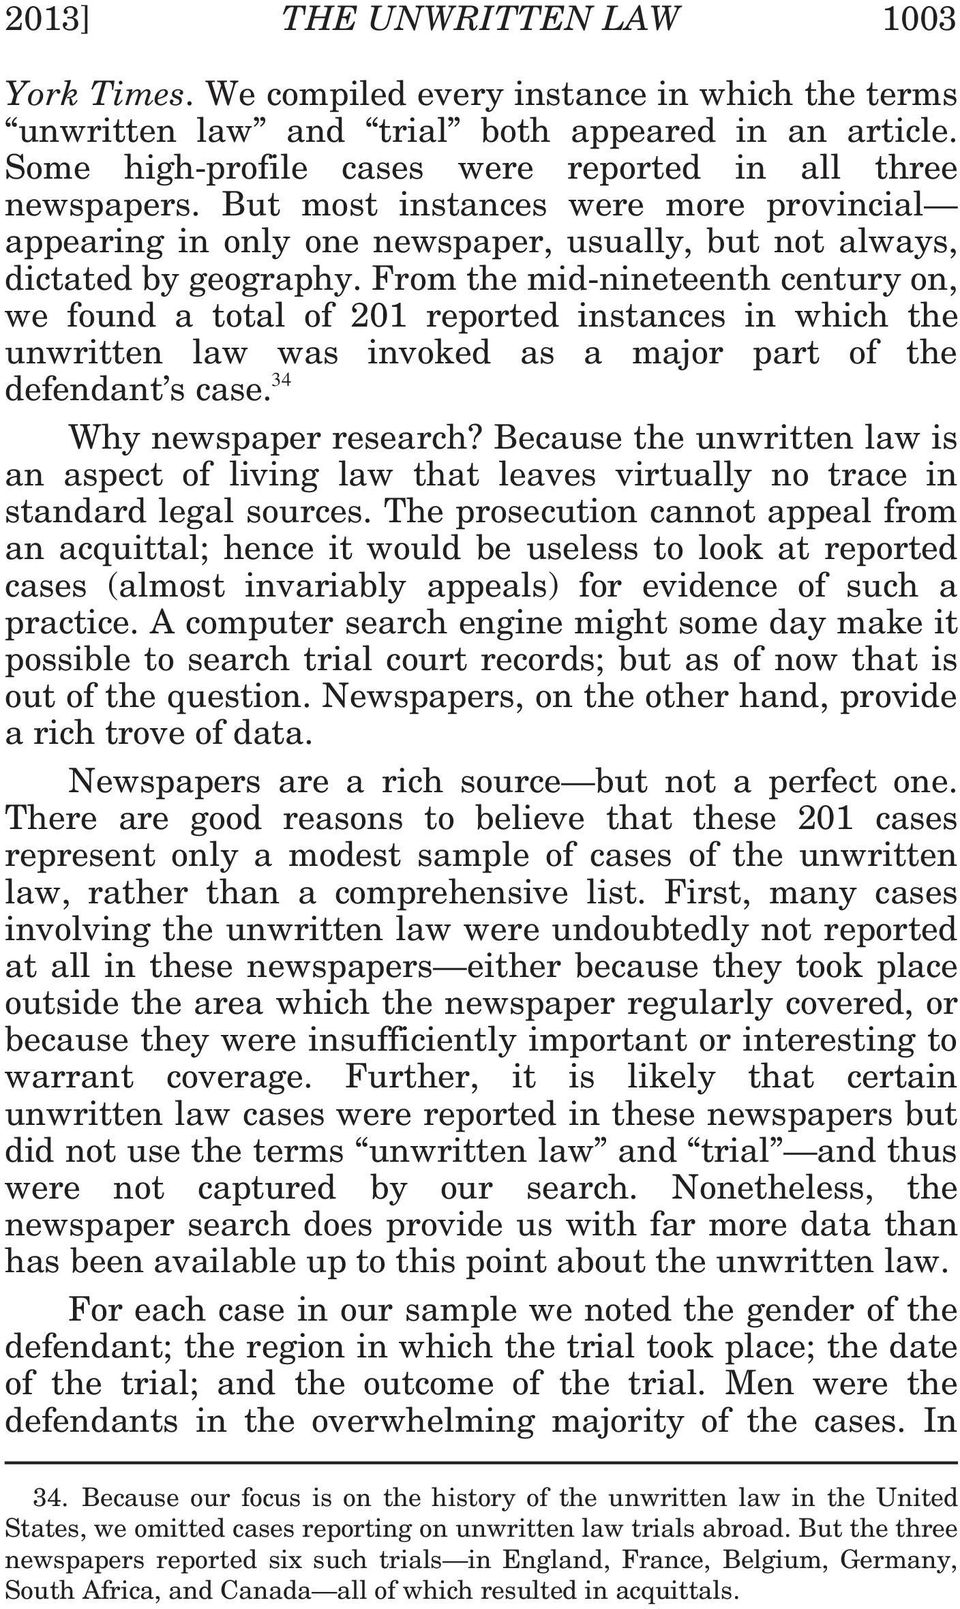 From the mid-nineteenth century on, we found a total of 201 reported instances in which the unwritten law was invoked as a major part of the defendant s case. 34 Why newspaper research?